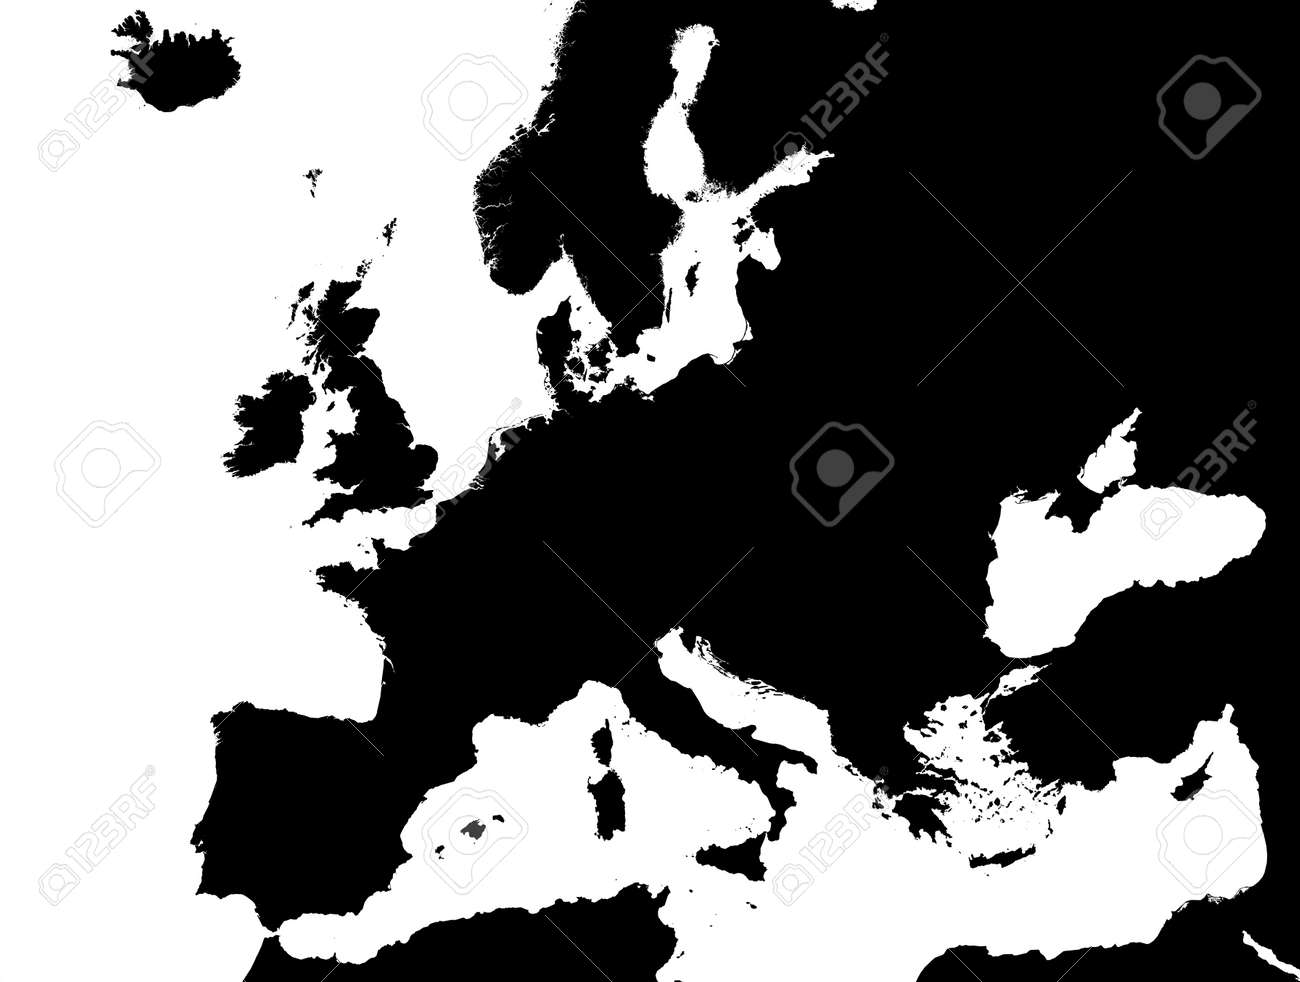 Black Map Of Europe.Detailed Black And White Map Of Europe Lambert Projection Stock